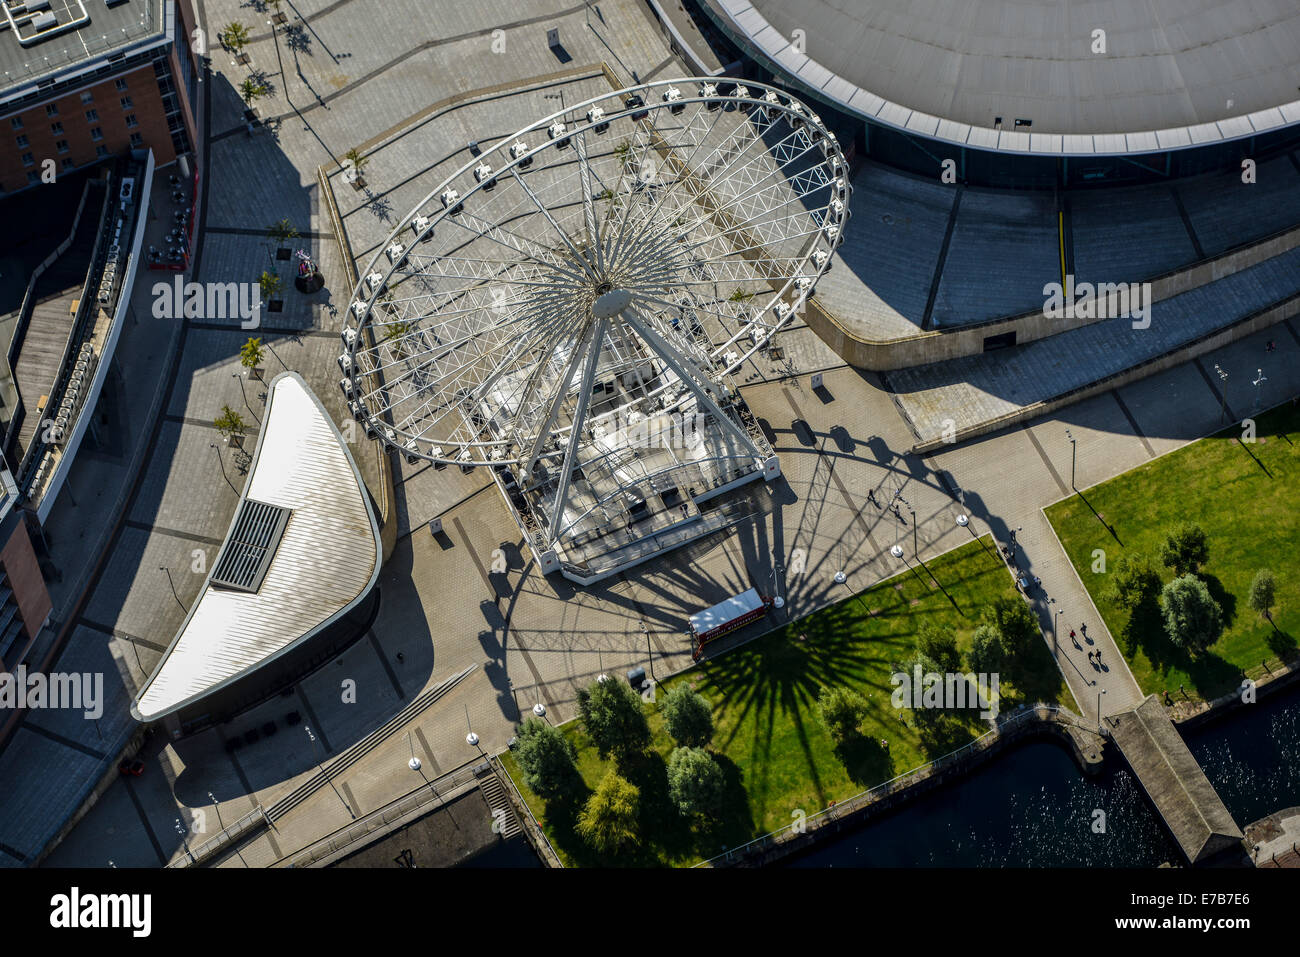 A close up aerial view of the Liverpool Echo Wheel. - Stock Image